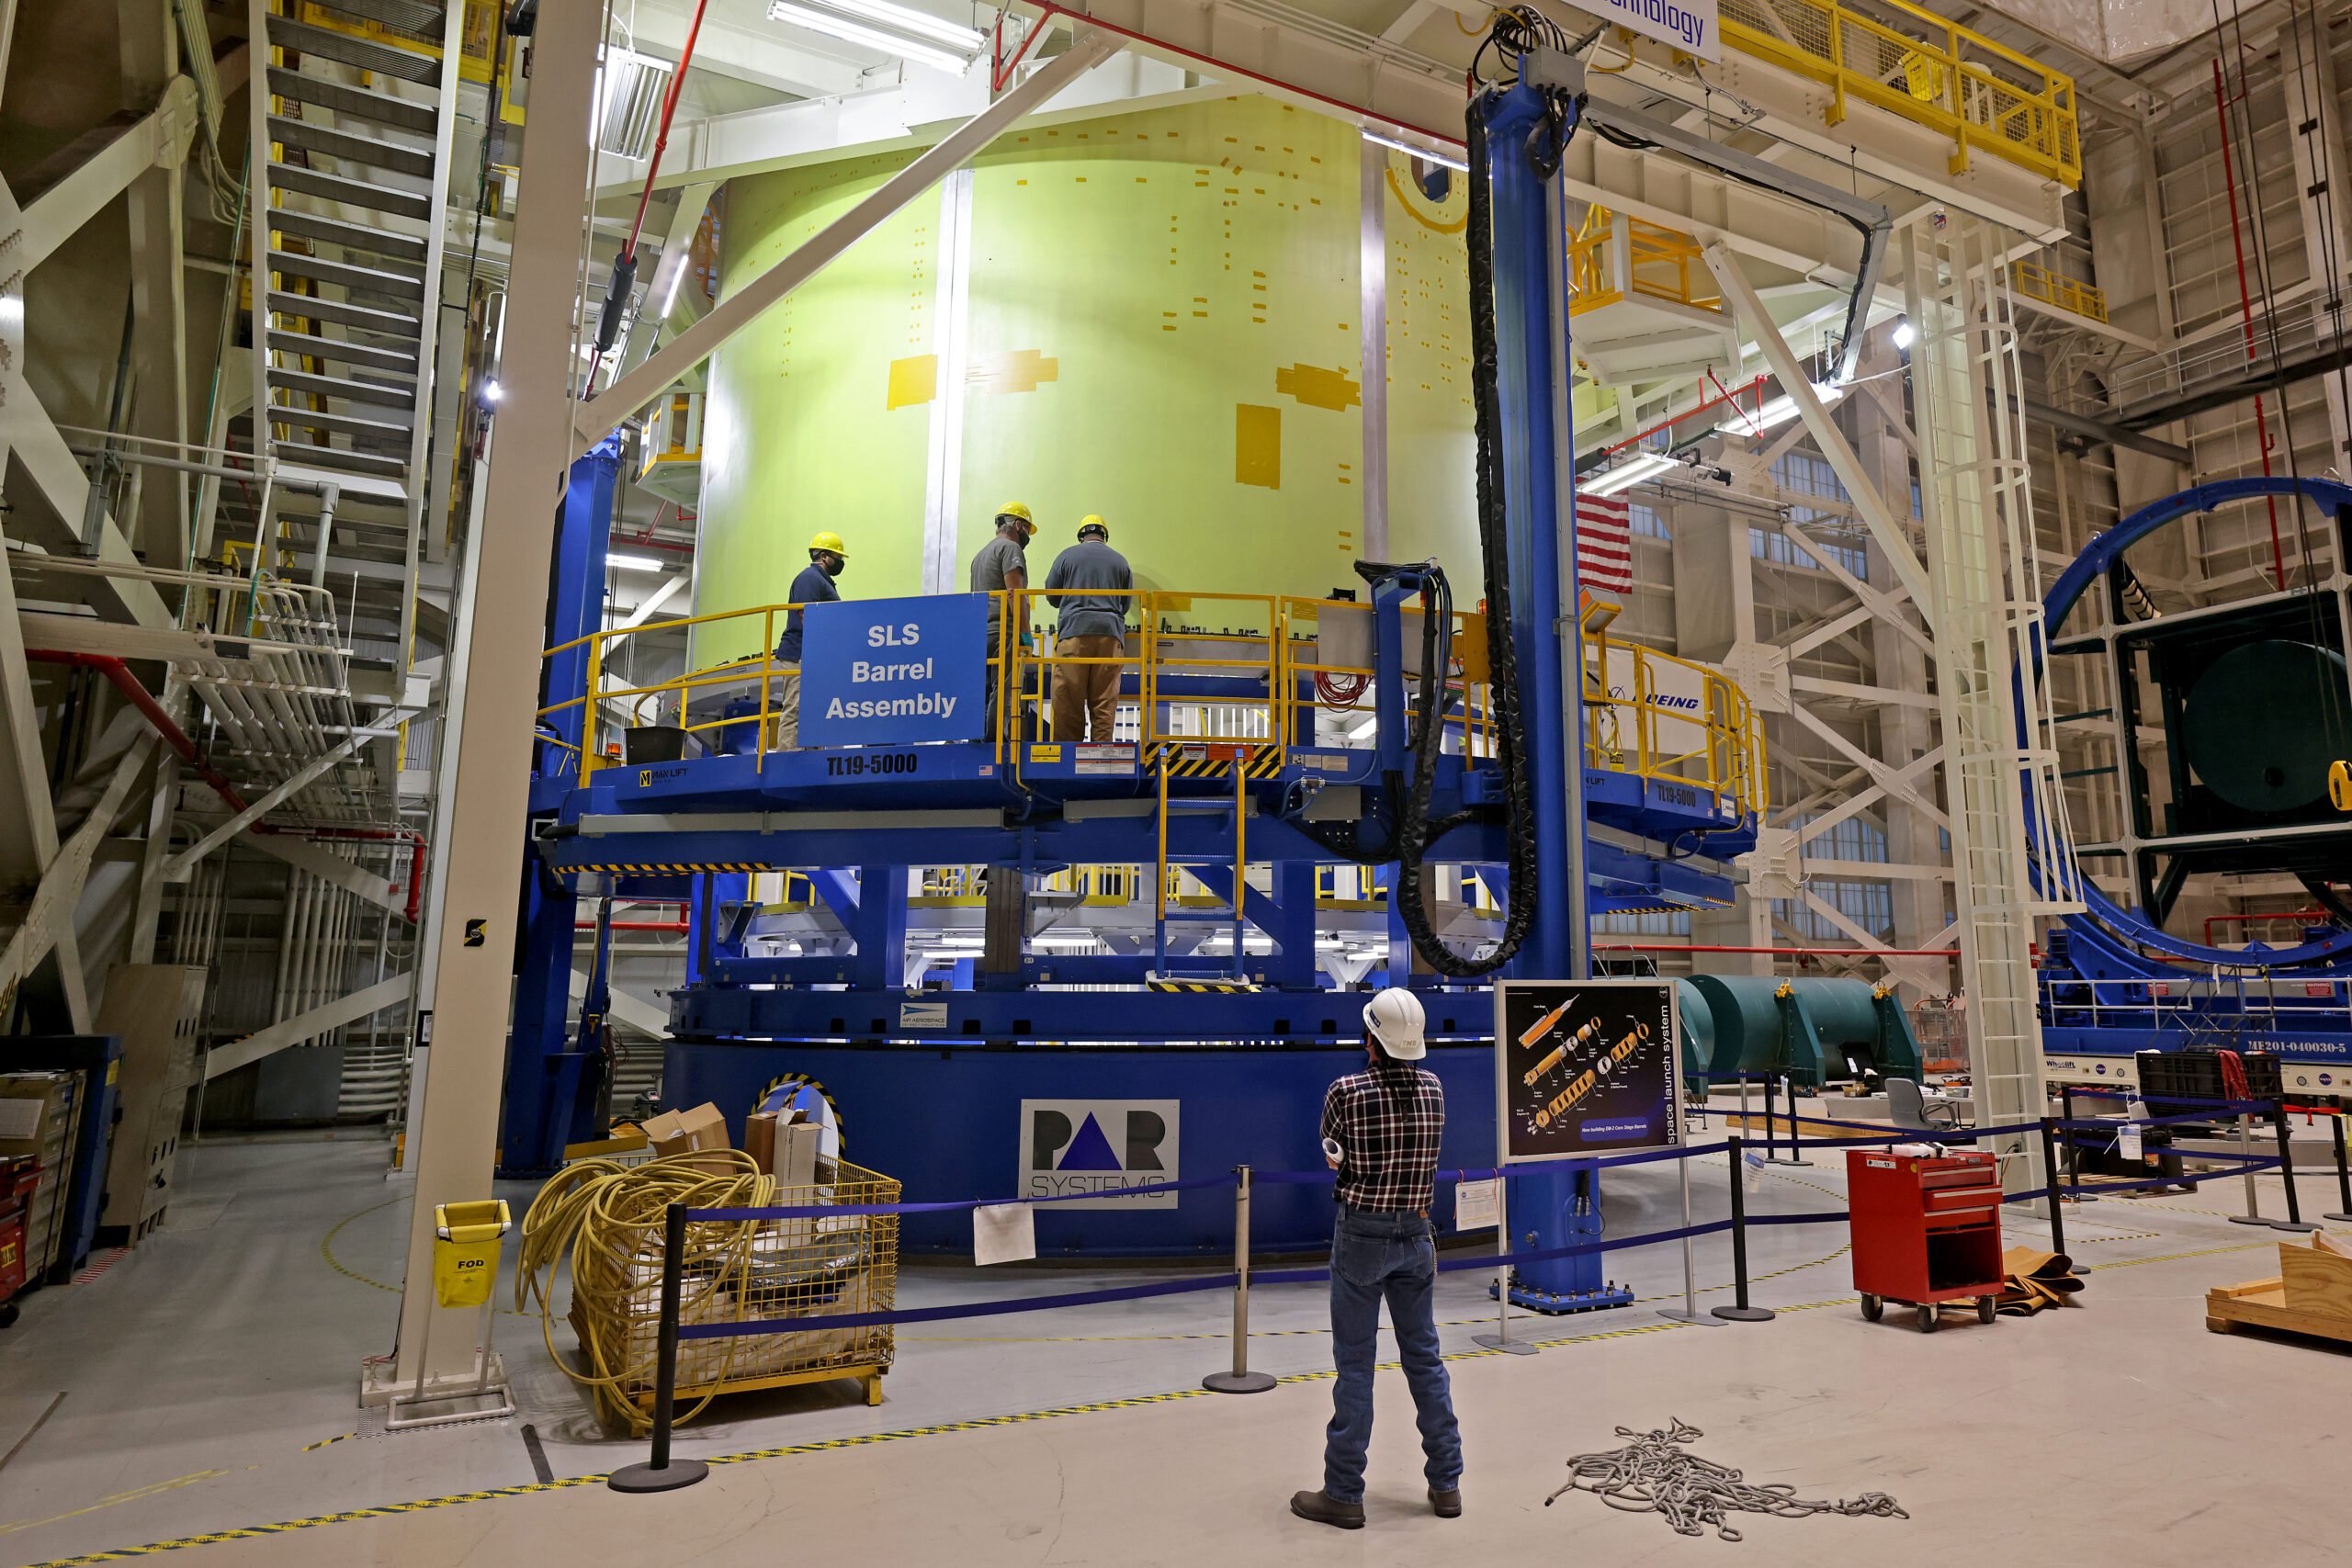 The final panel is lifted into place on a CS3 engine section barrel assembly inside Building 115 of the NASA Michoud Assembly Facility on Thursday, January 7, 2021.